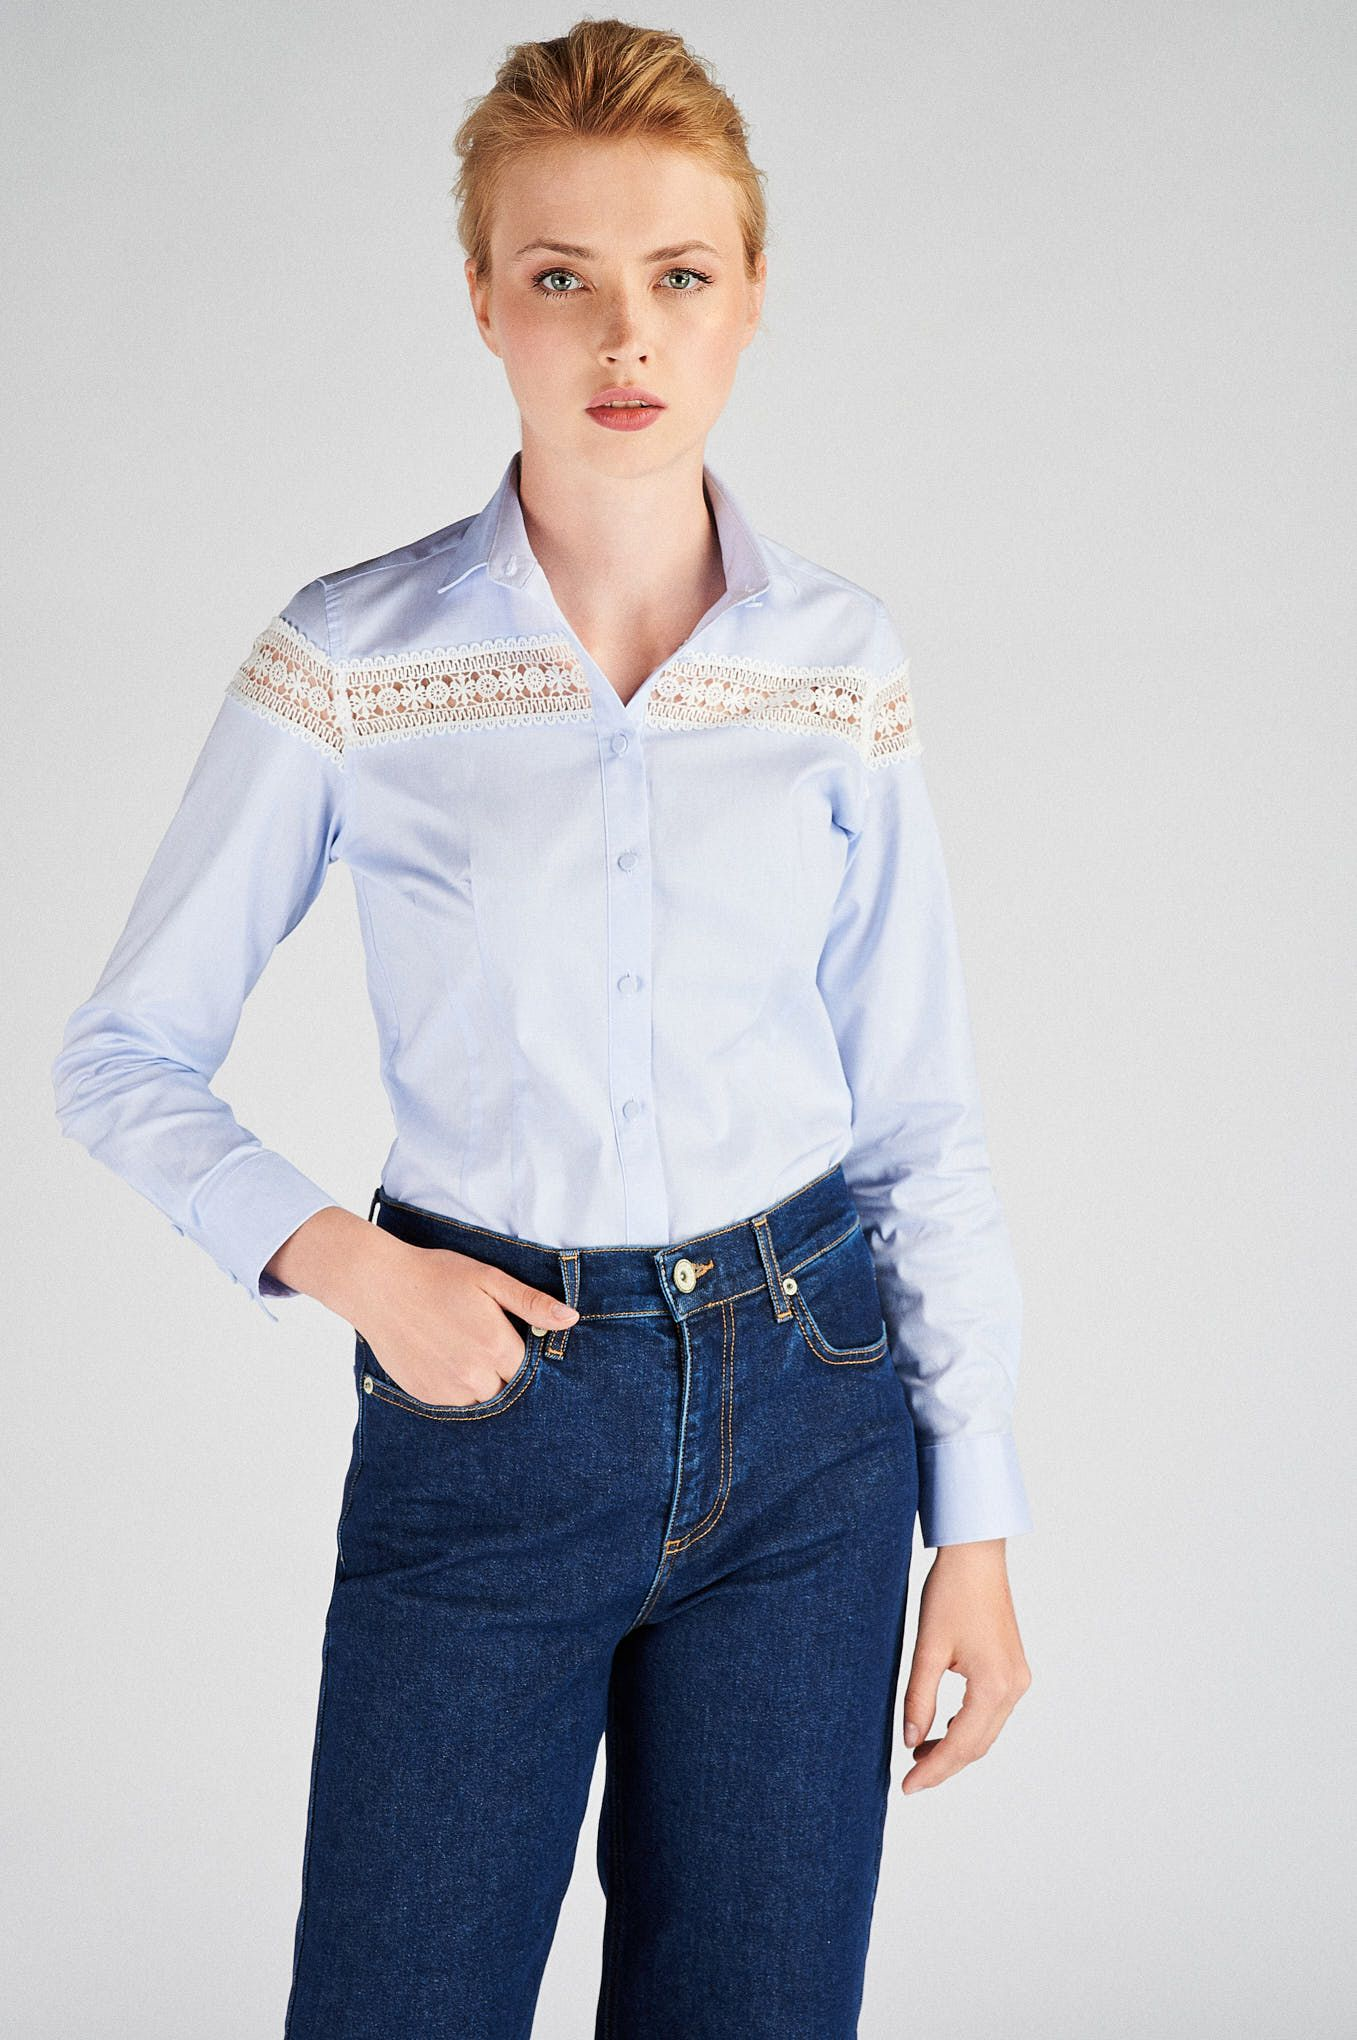 Women s  Classic Slim Fit Shirt with Lace